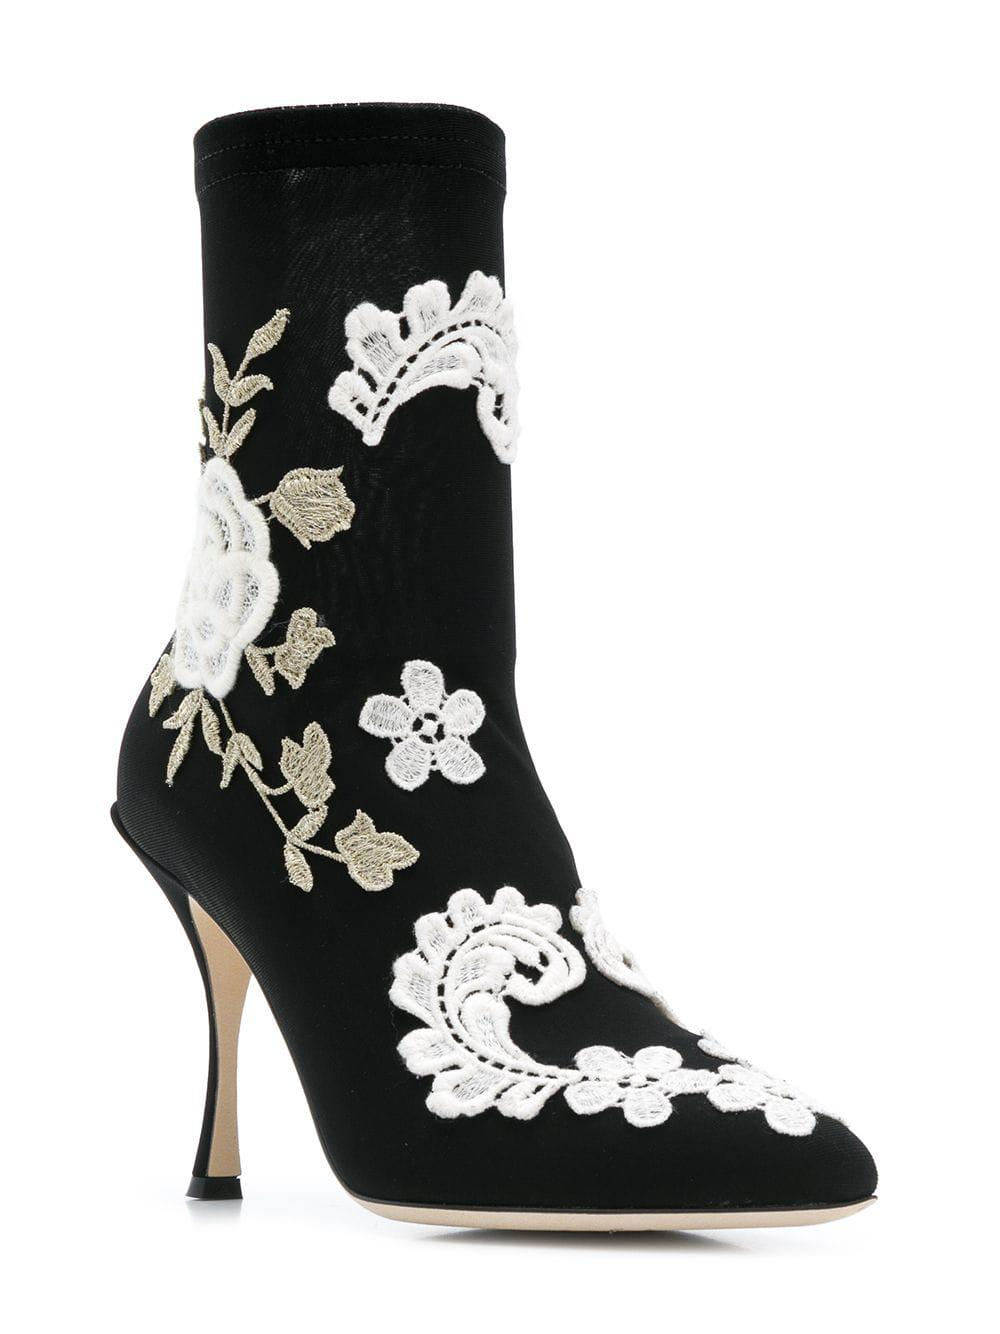 6974096b348 Lyst - Dolce   Gabbana Ankle Boot In Stretch Jersey With Macramé Embroidery  in Black - Save 70%